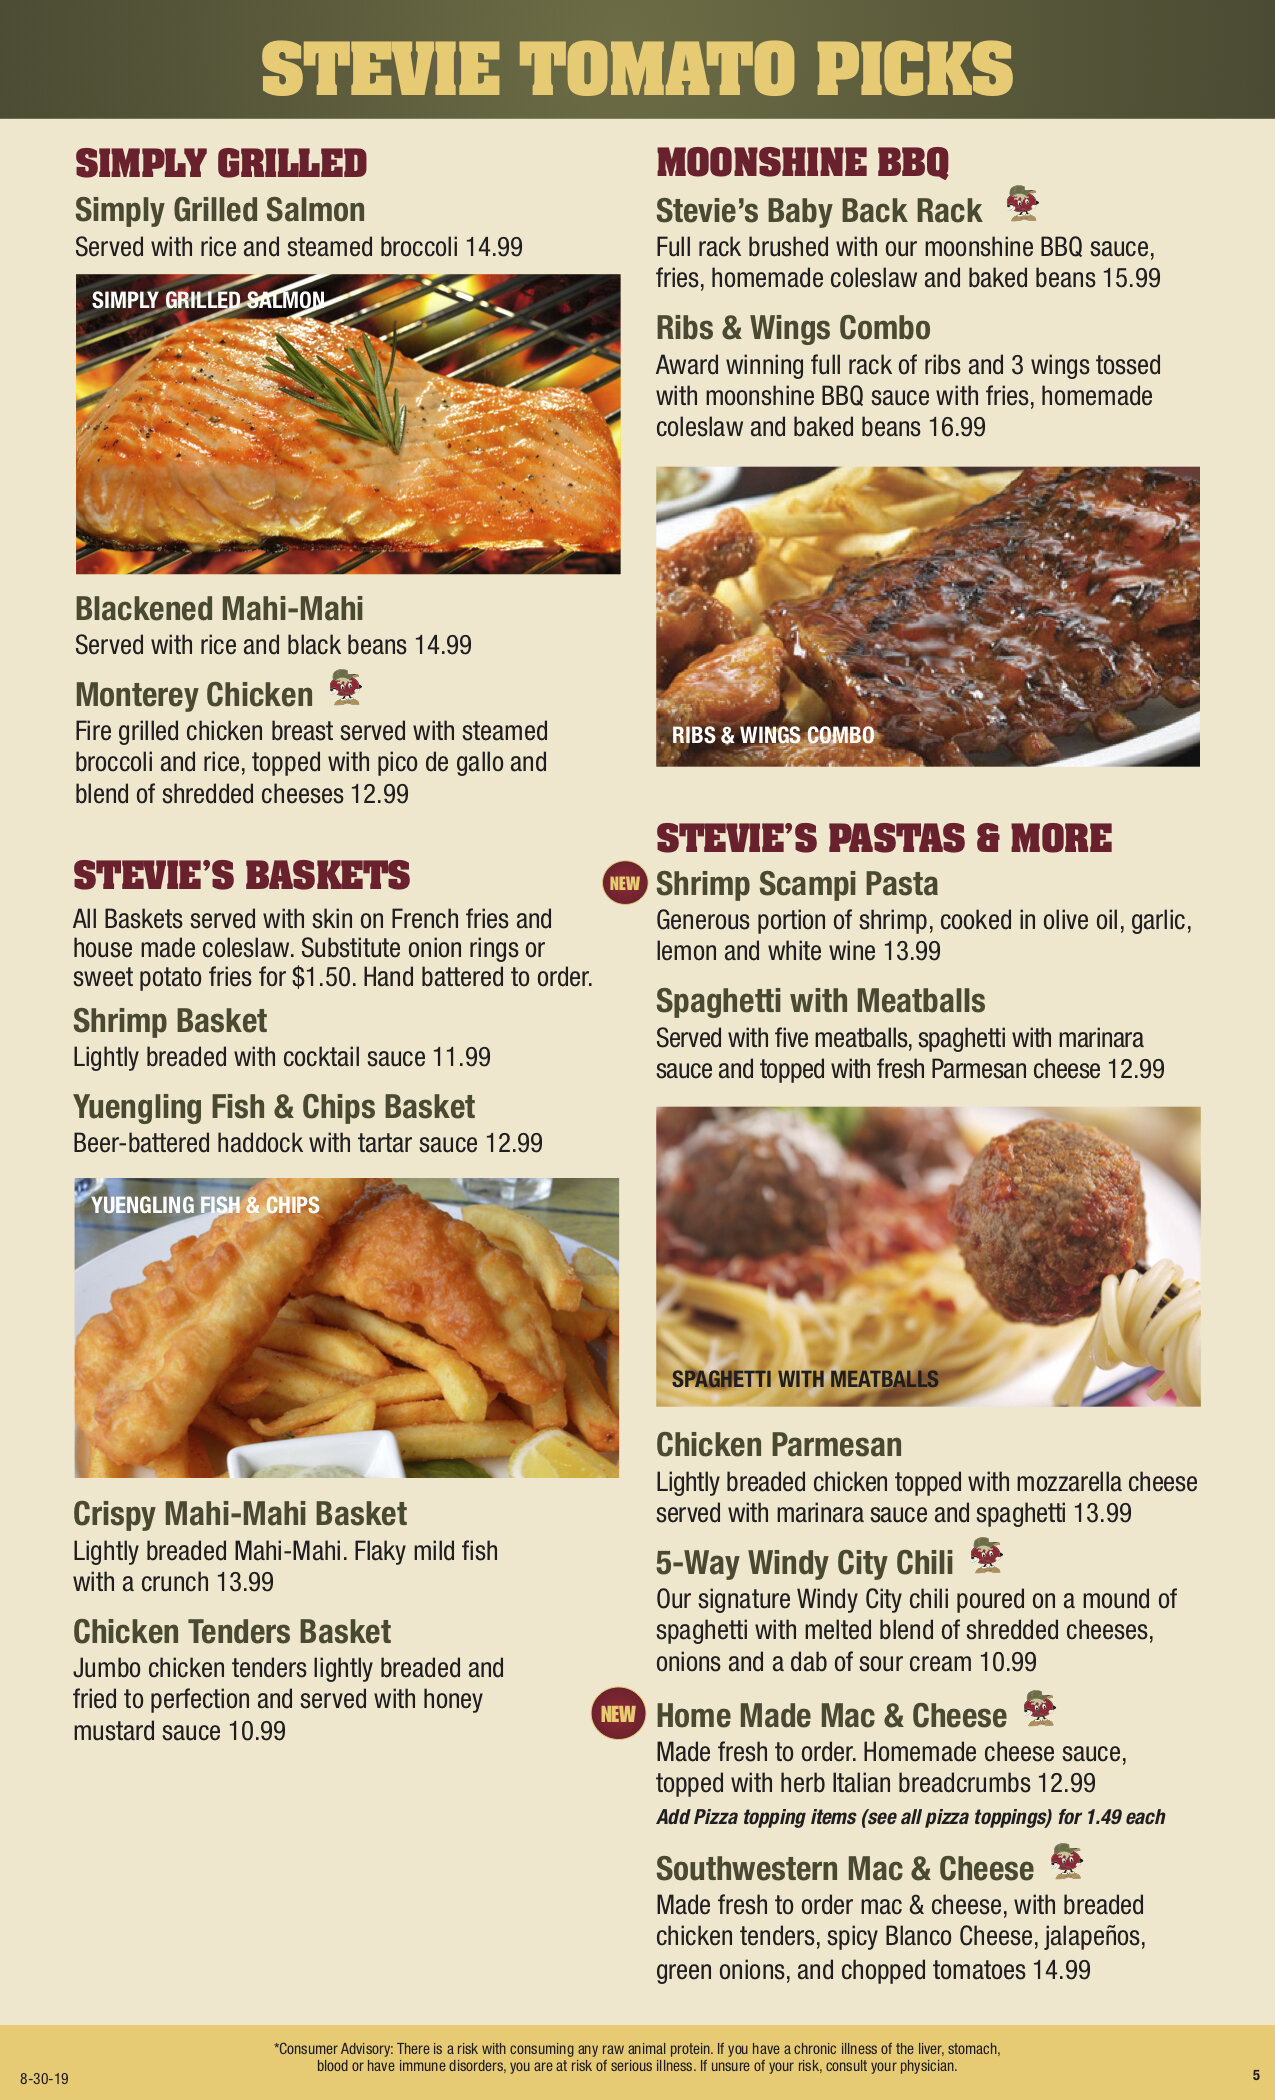 New Cape page 6 12064_Stevies_NewMenu_Cape_Aug2019_SignPages_V6.jpg